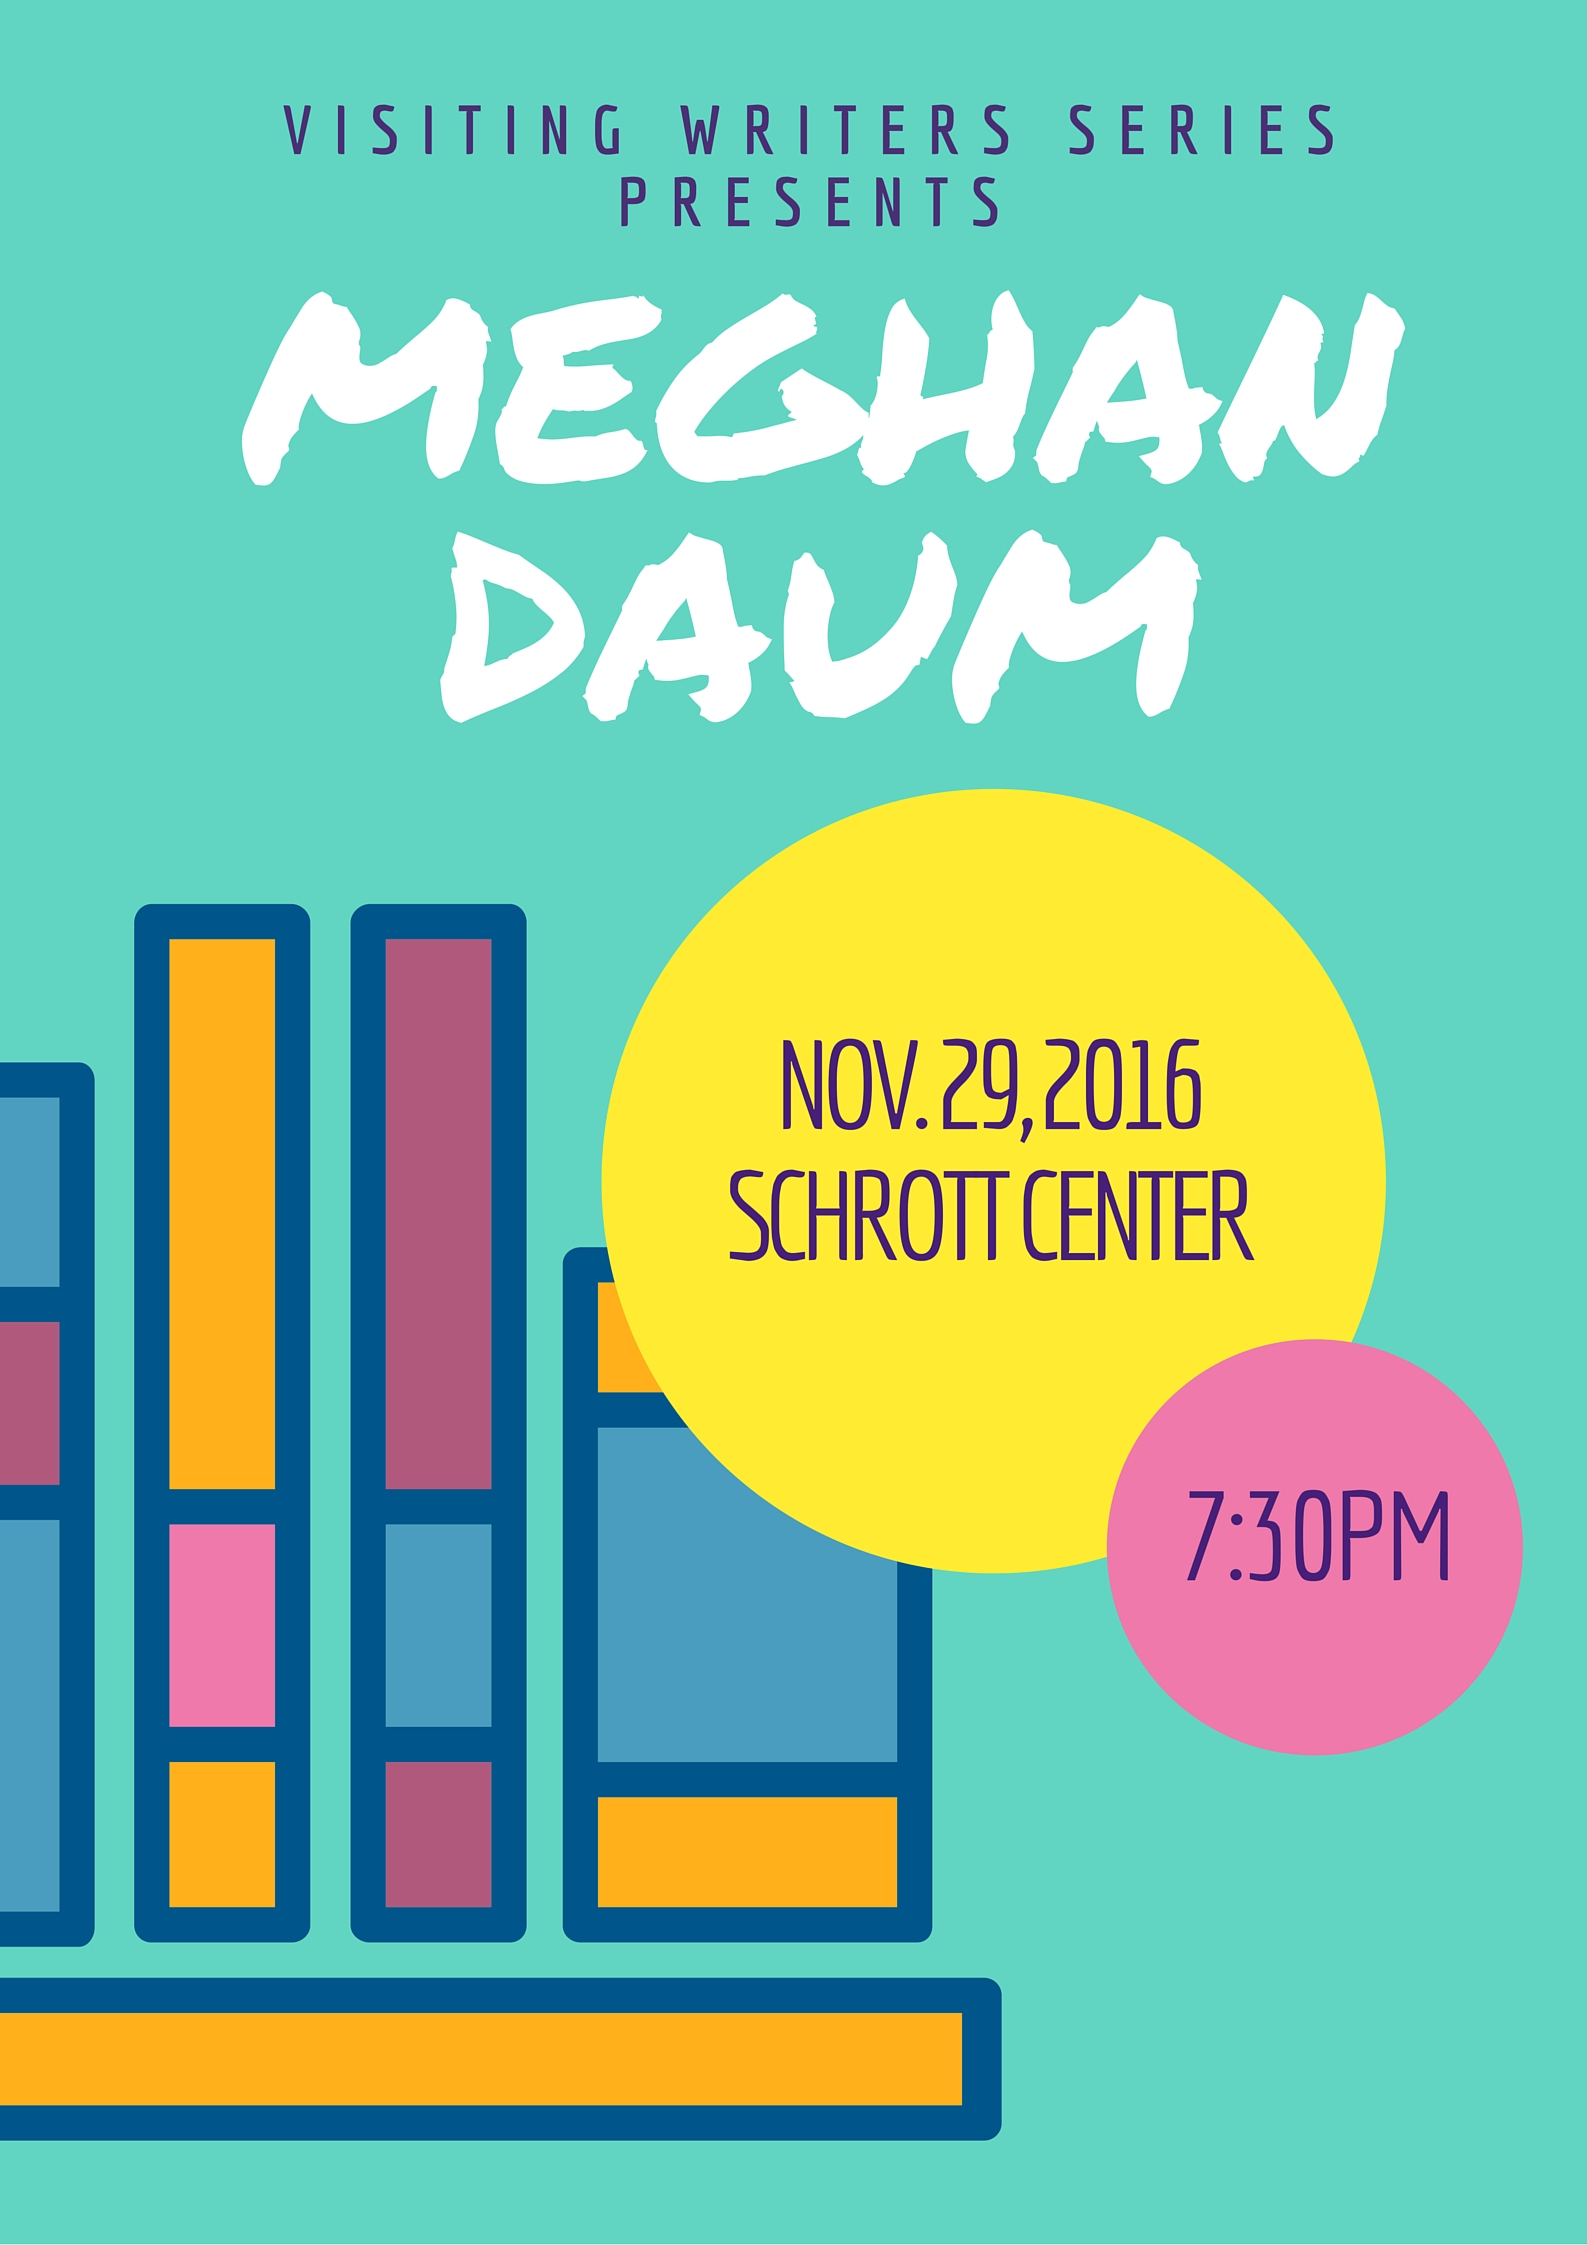 Essayist Meghan Daum, author of The Unspeakable, will be at the Schrott Center for the Arts on November 29, 2016, at 7:30pm.